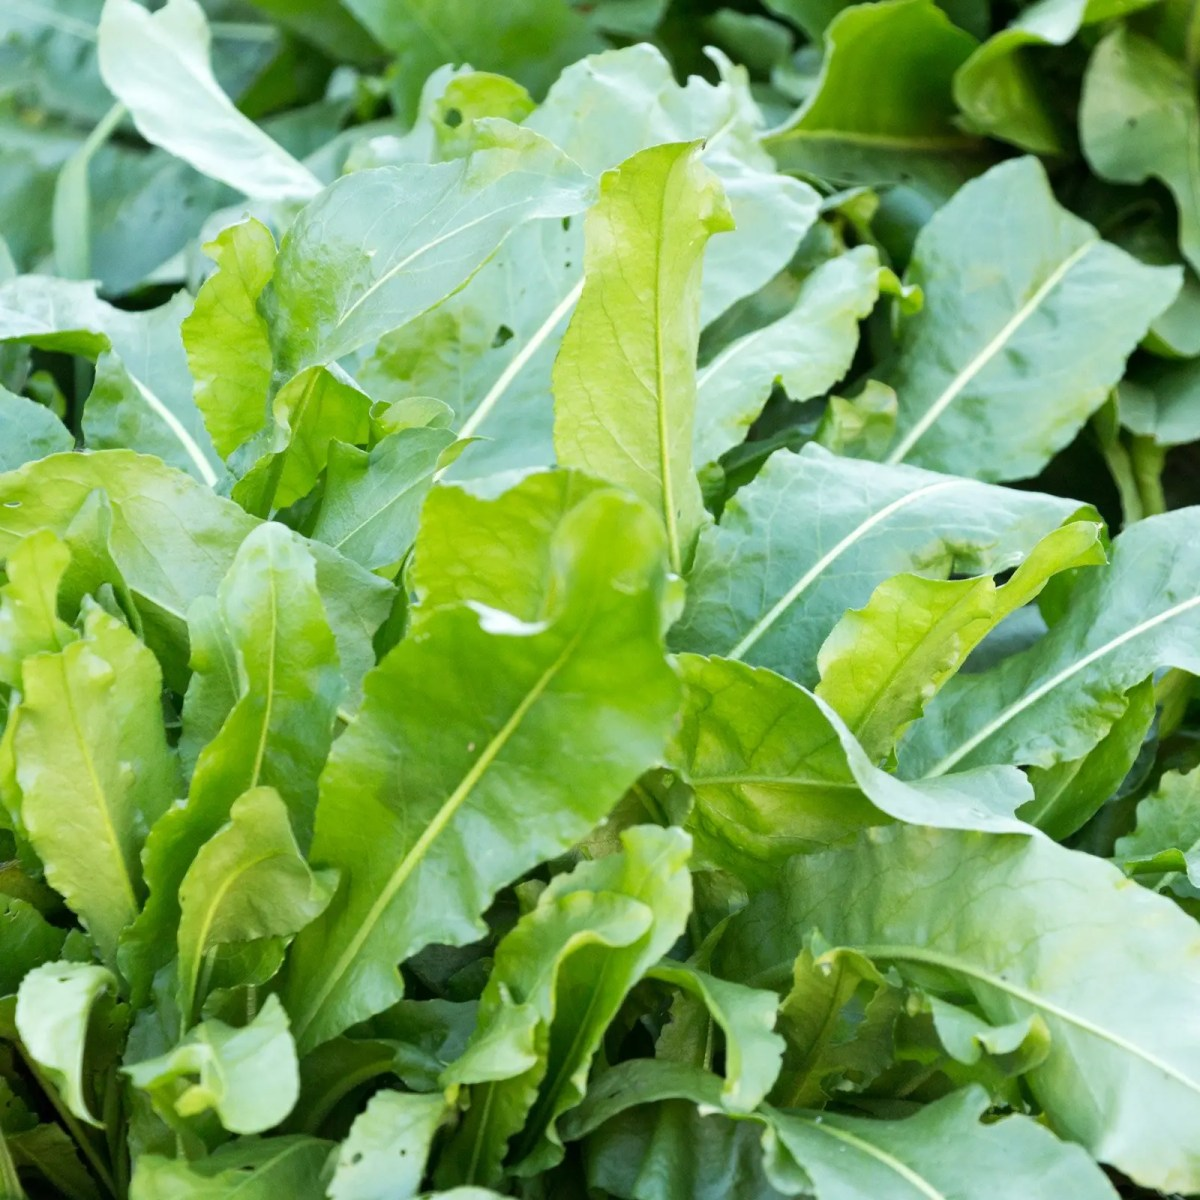 Healthy woad leaves.